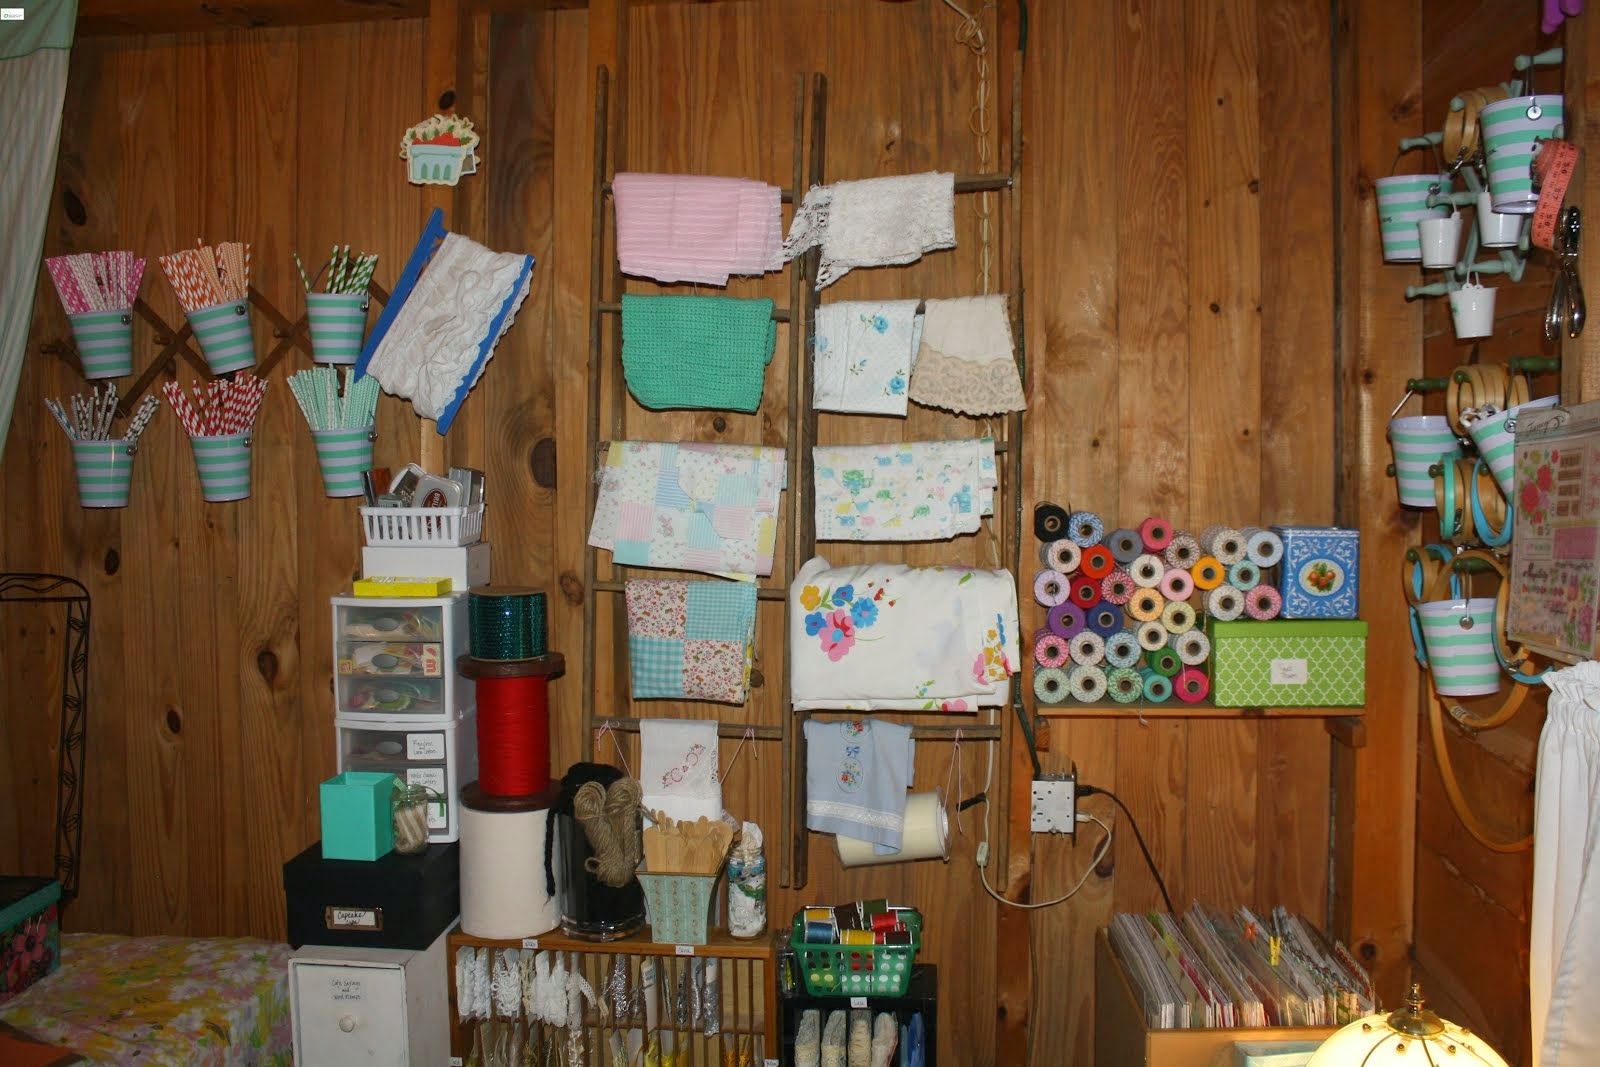 CRAFT ROOM AT THE CABIN